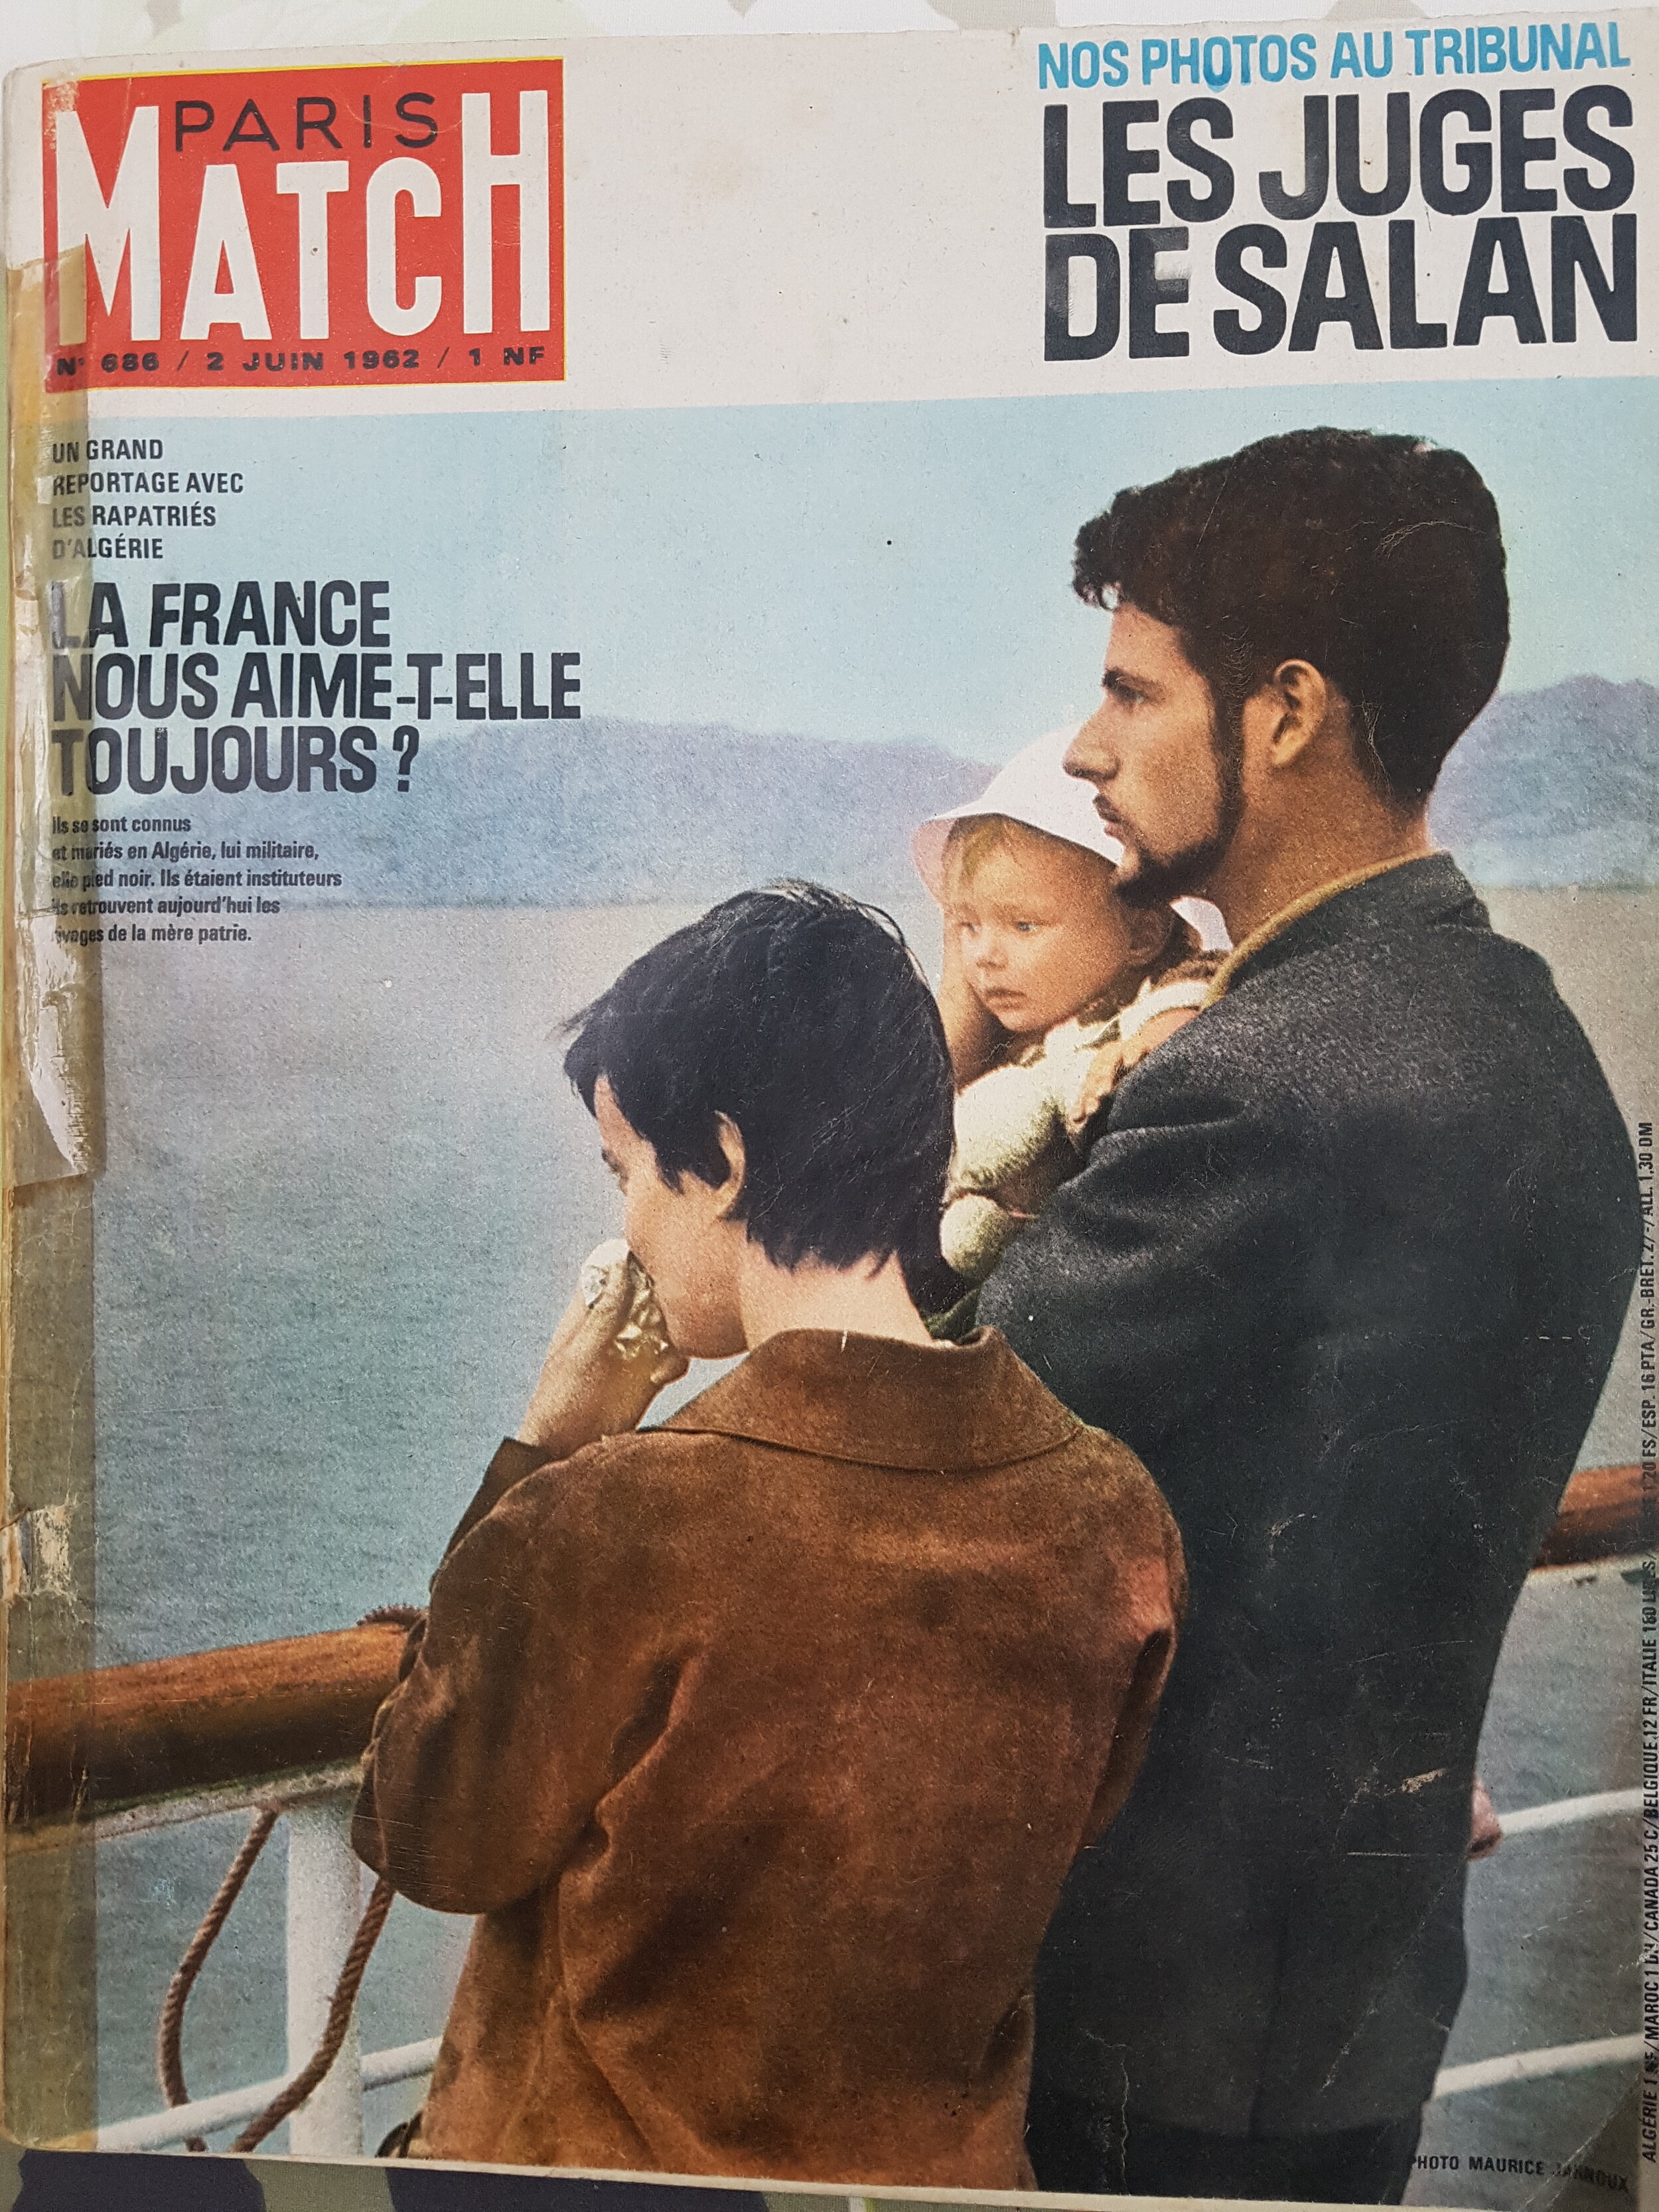 Paris-Match no. 686, 2 June 1962.